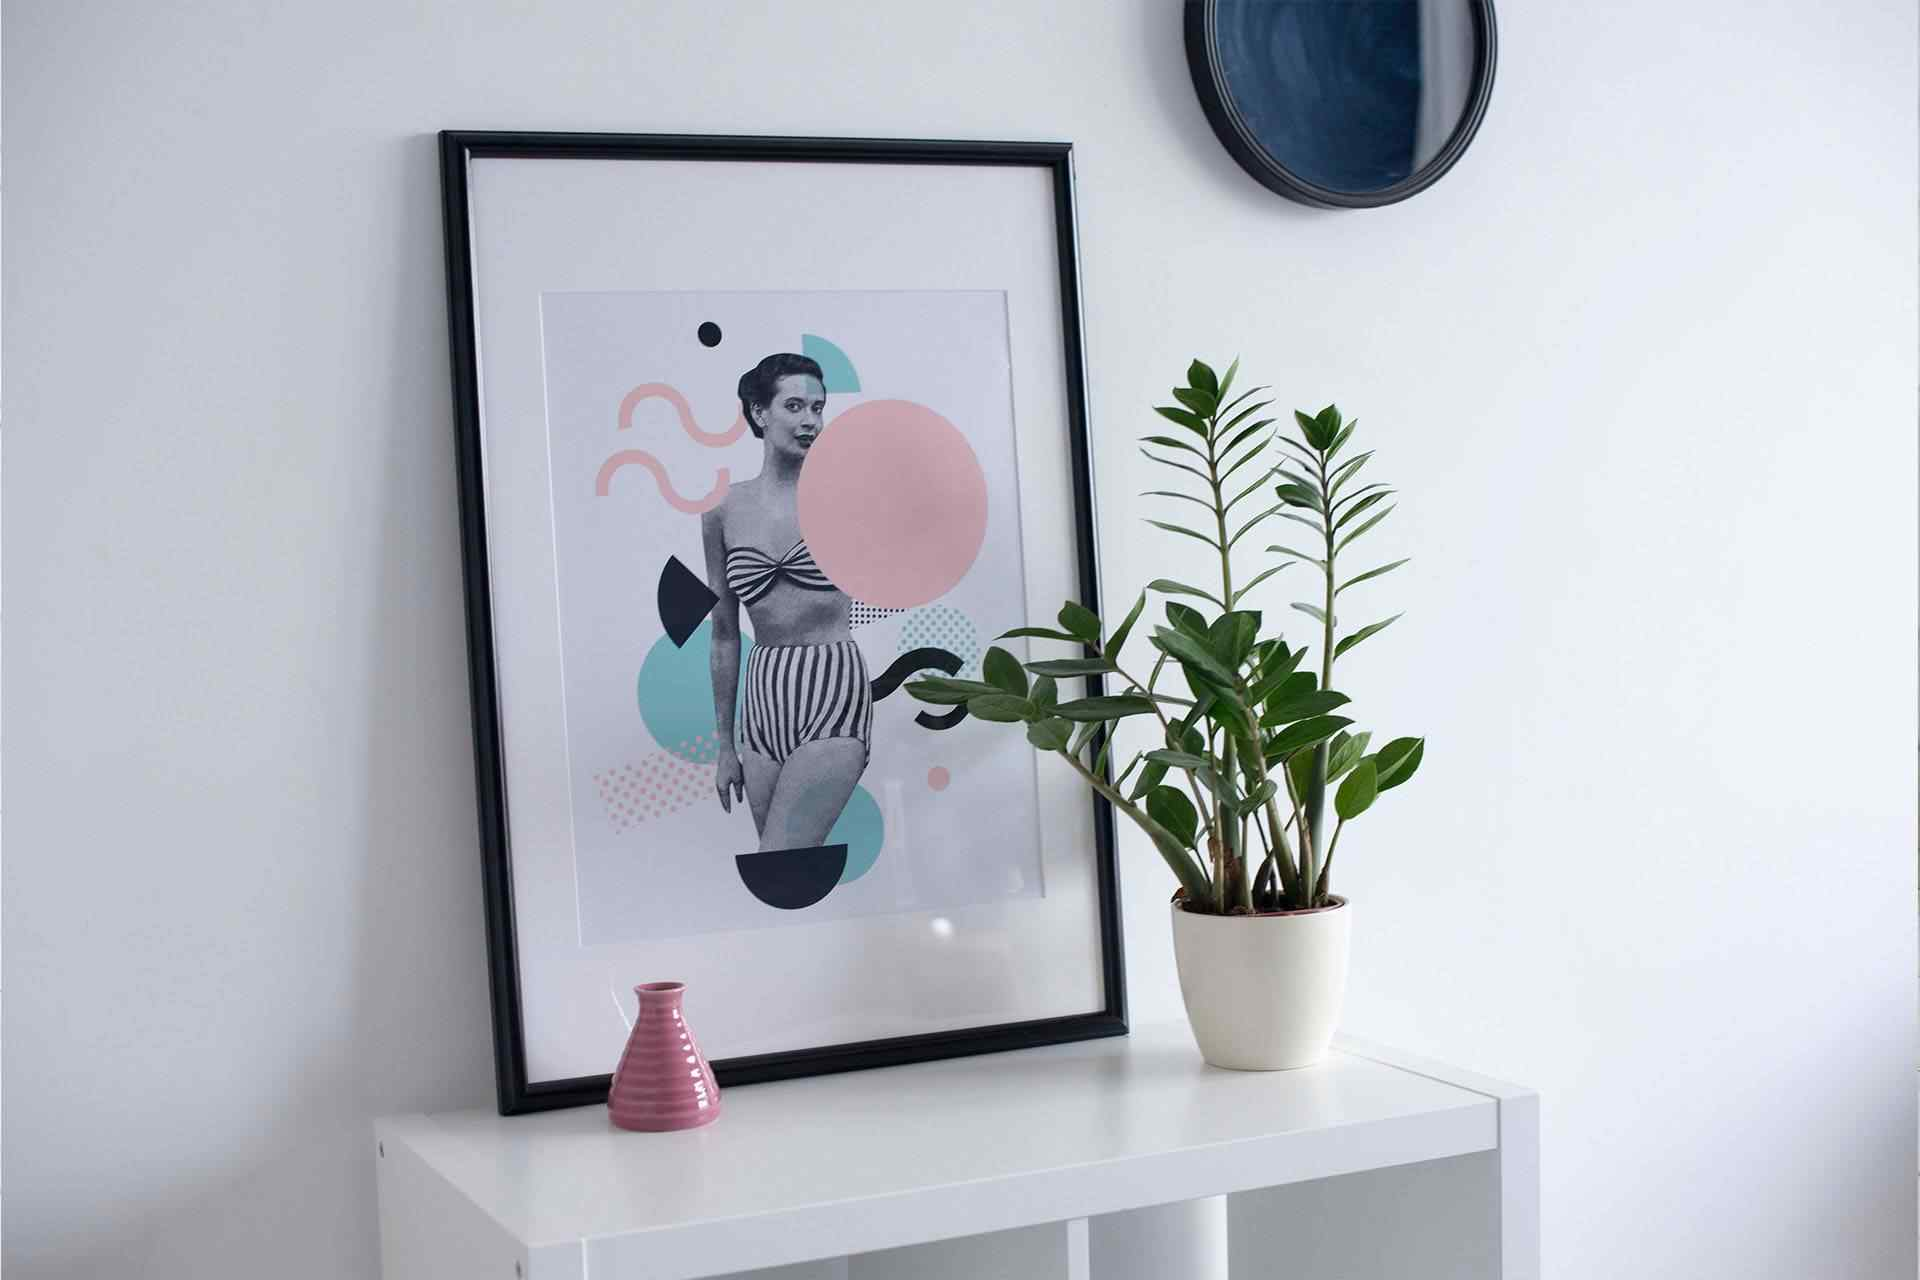 How to frame a poster